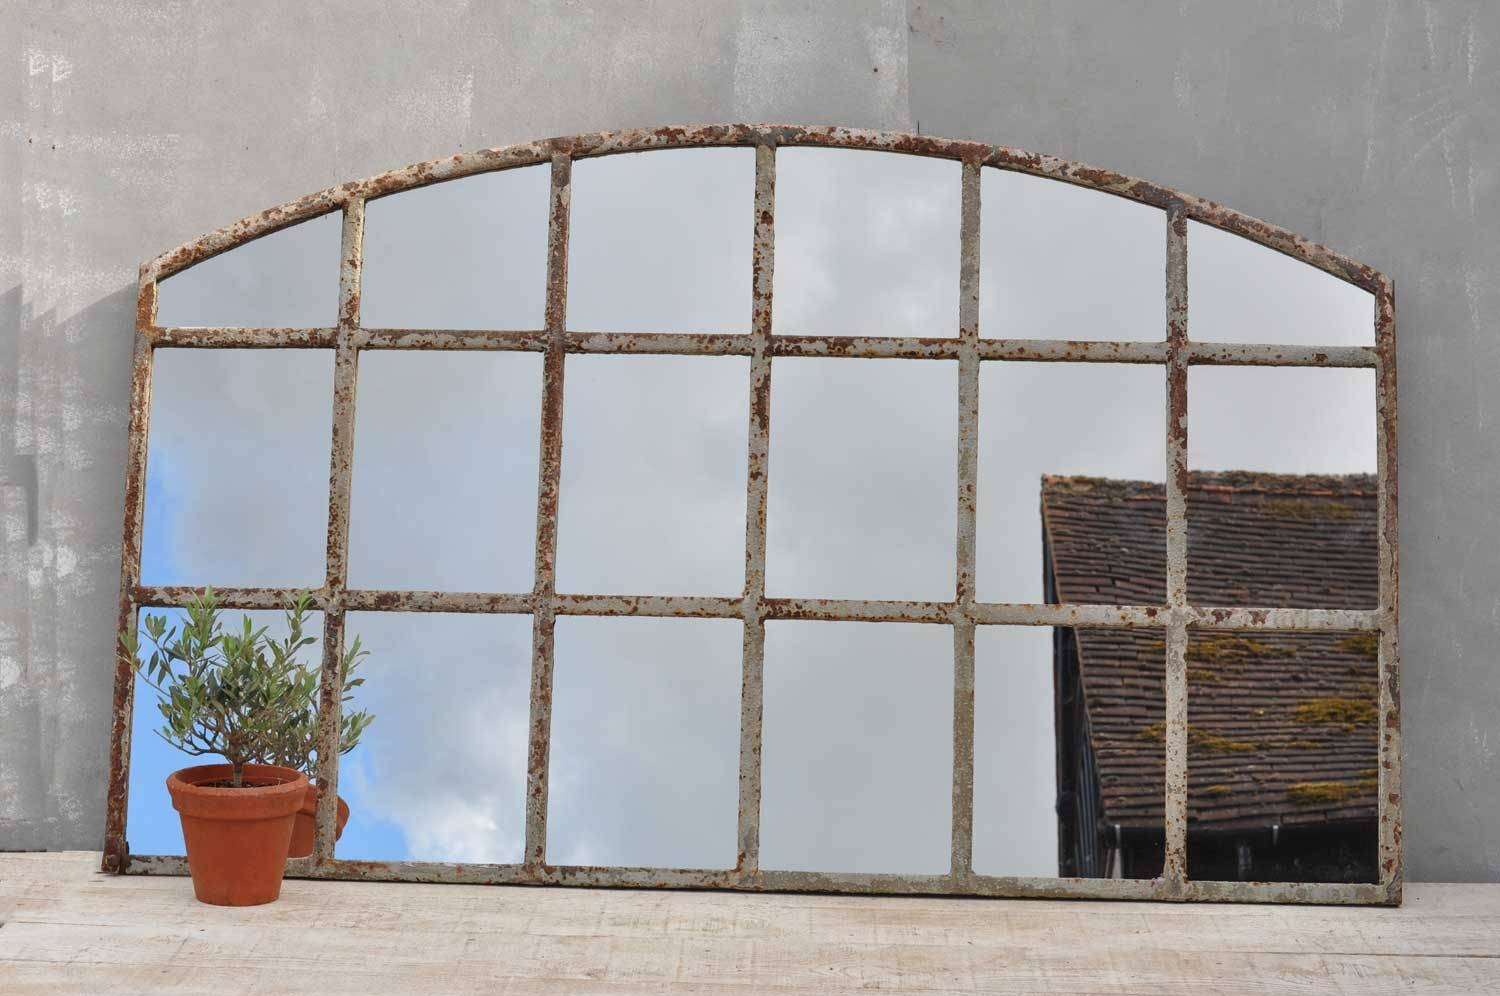 Warehouse Large Cast Iron Arched Window Mirror intended for Large Arched Window Mirrors (Image 14 of 15)